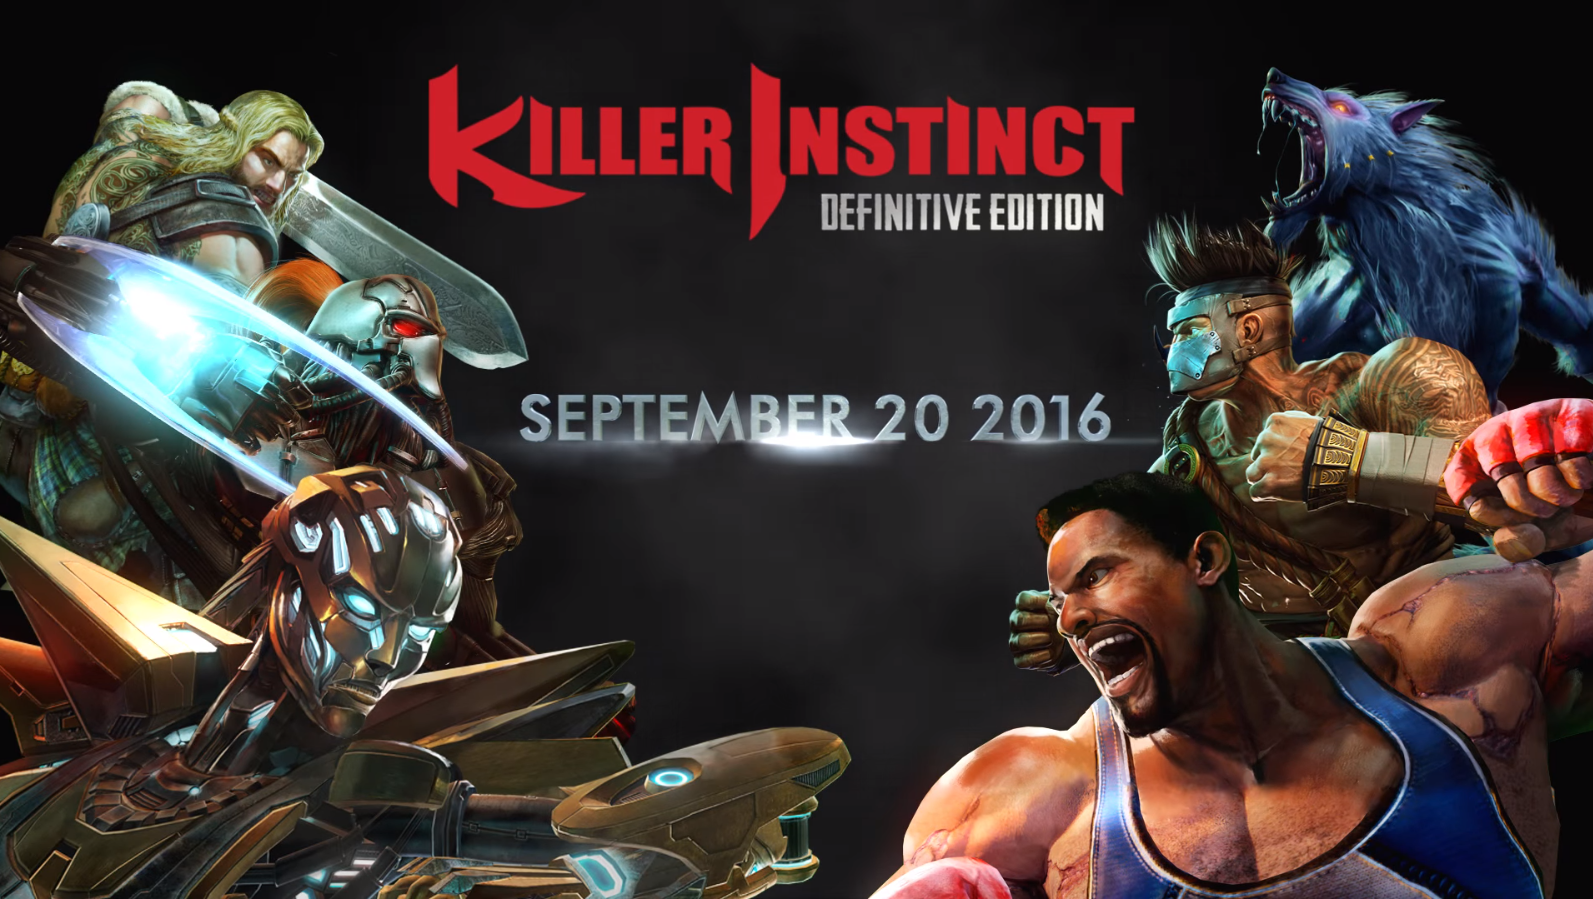 Killer Instinct: Definitive Edition Announced